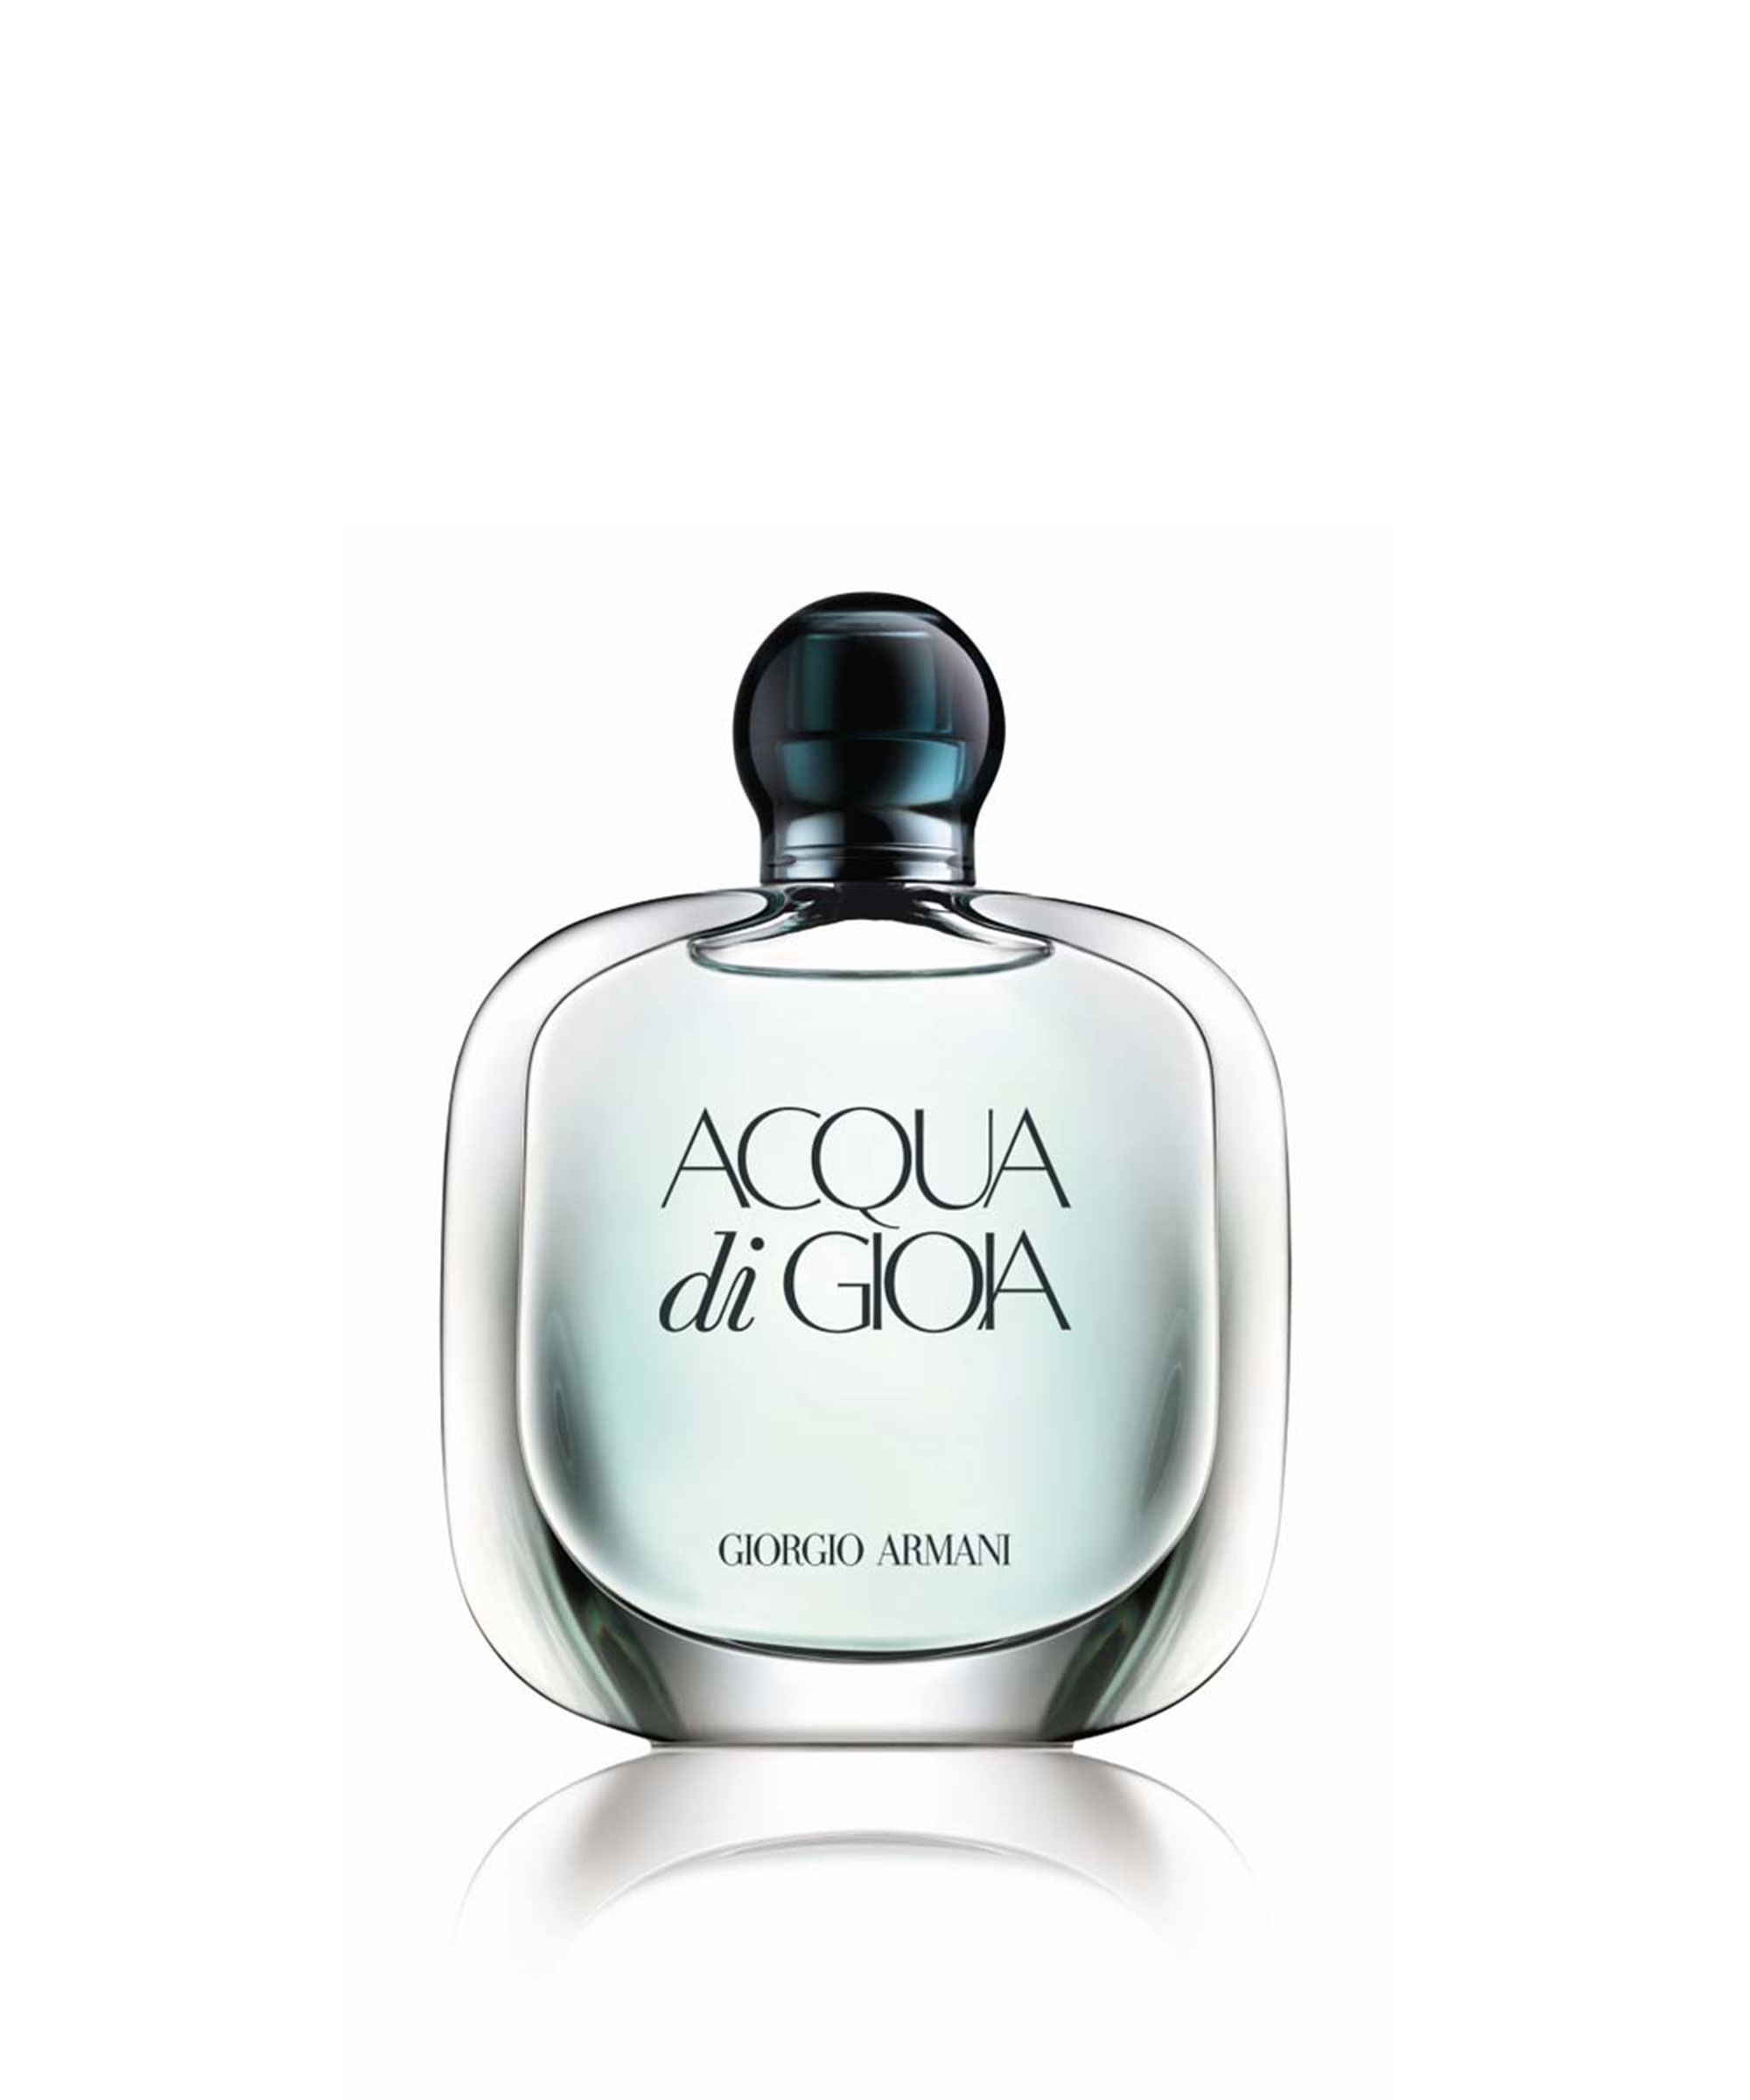 Aqua Di Gioia Eau De Parfum 30ml Beauty Line Shop Makeup Beauty